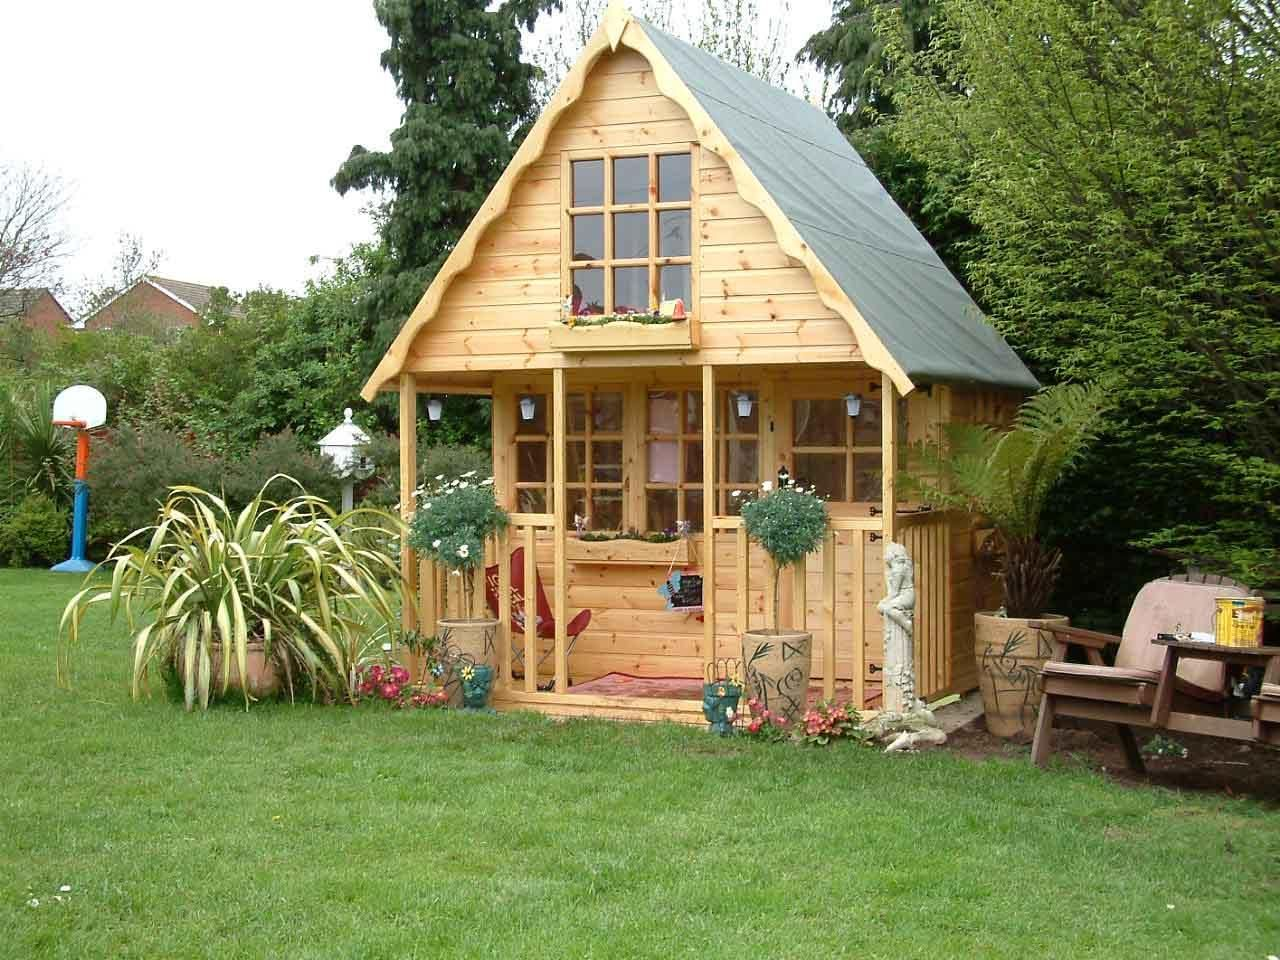 Outdoor playhouse for kids wood small playhouse designs for Kids outdoor playhouse